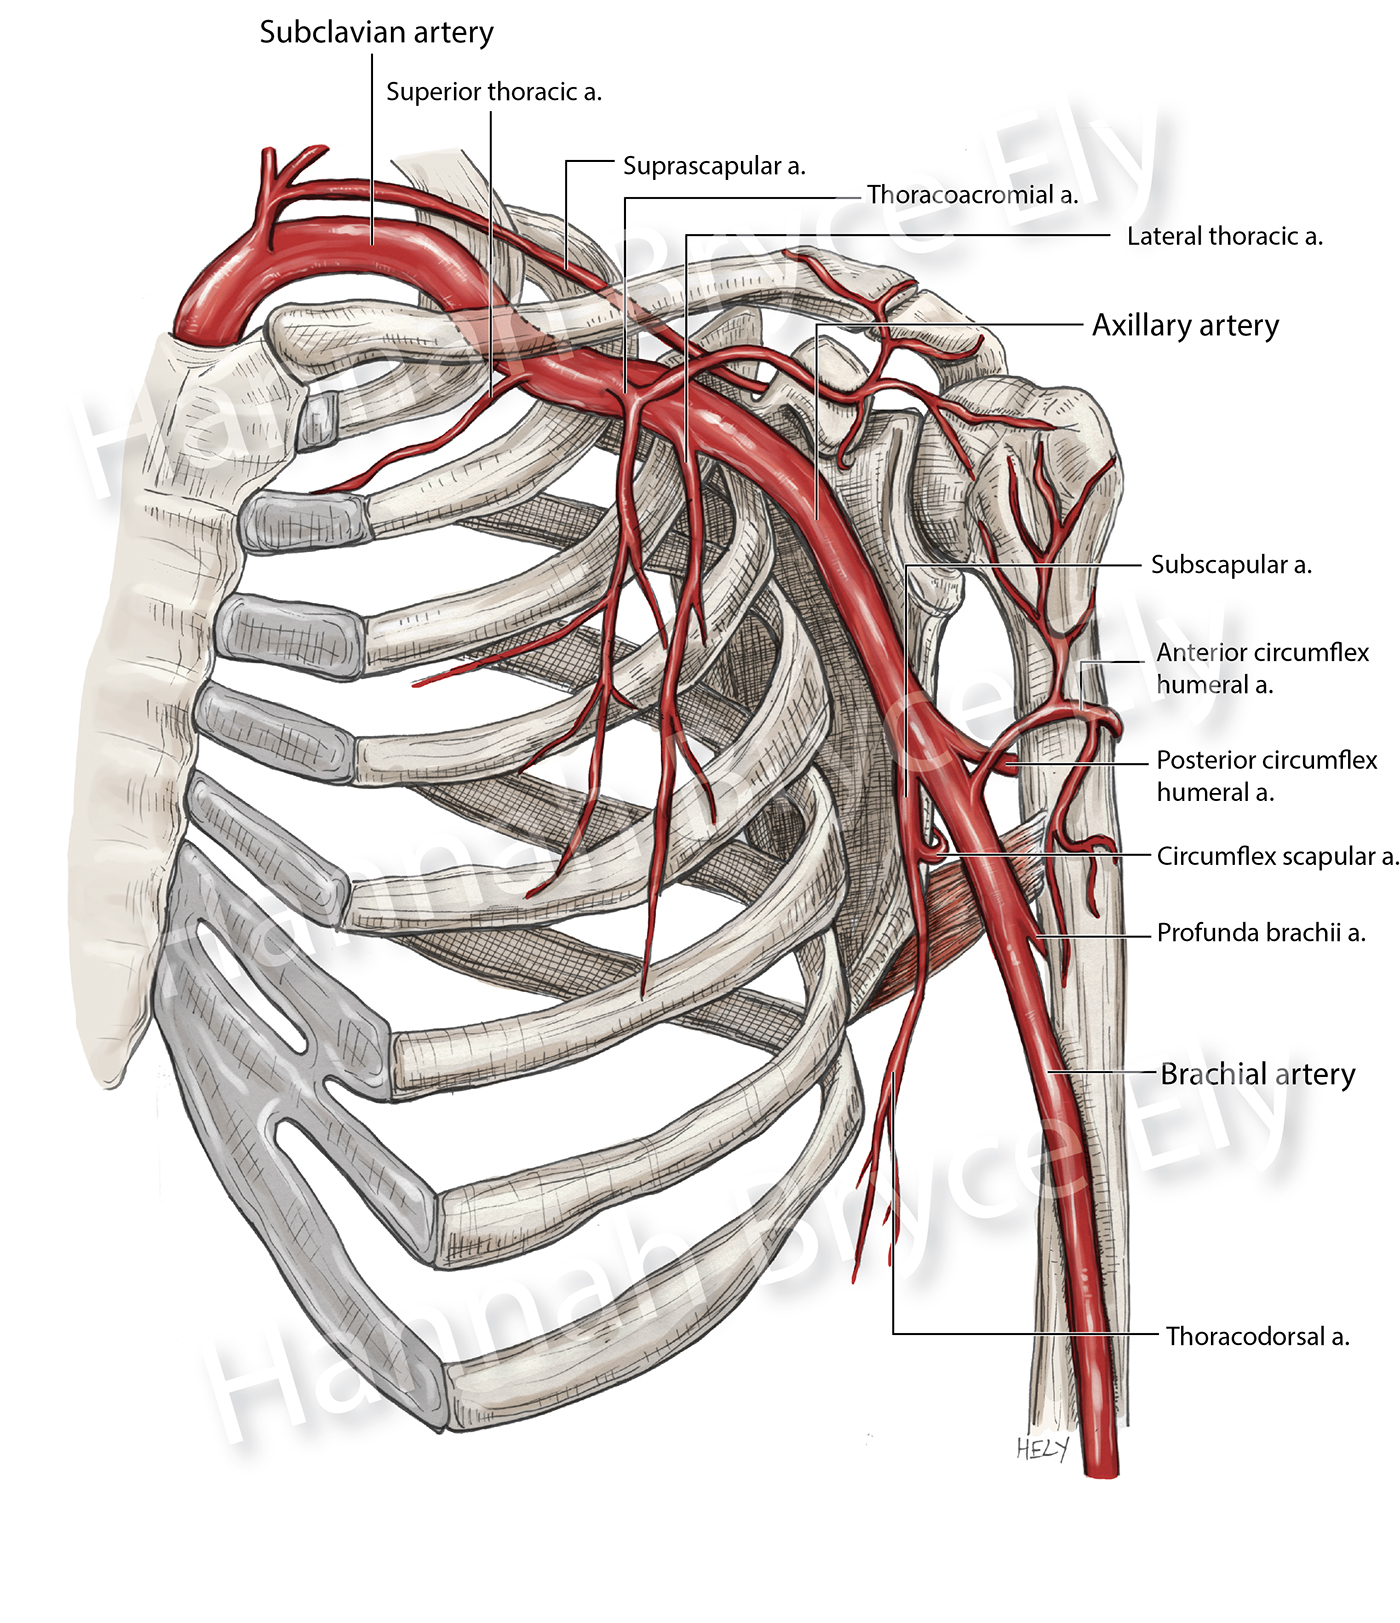 pectoralis major muscle diagram axillary artery and its branches on behance  axillary artery and its branches on behance